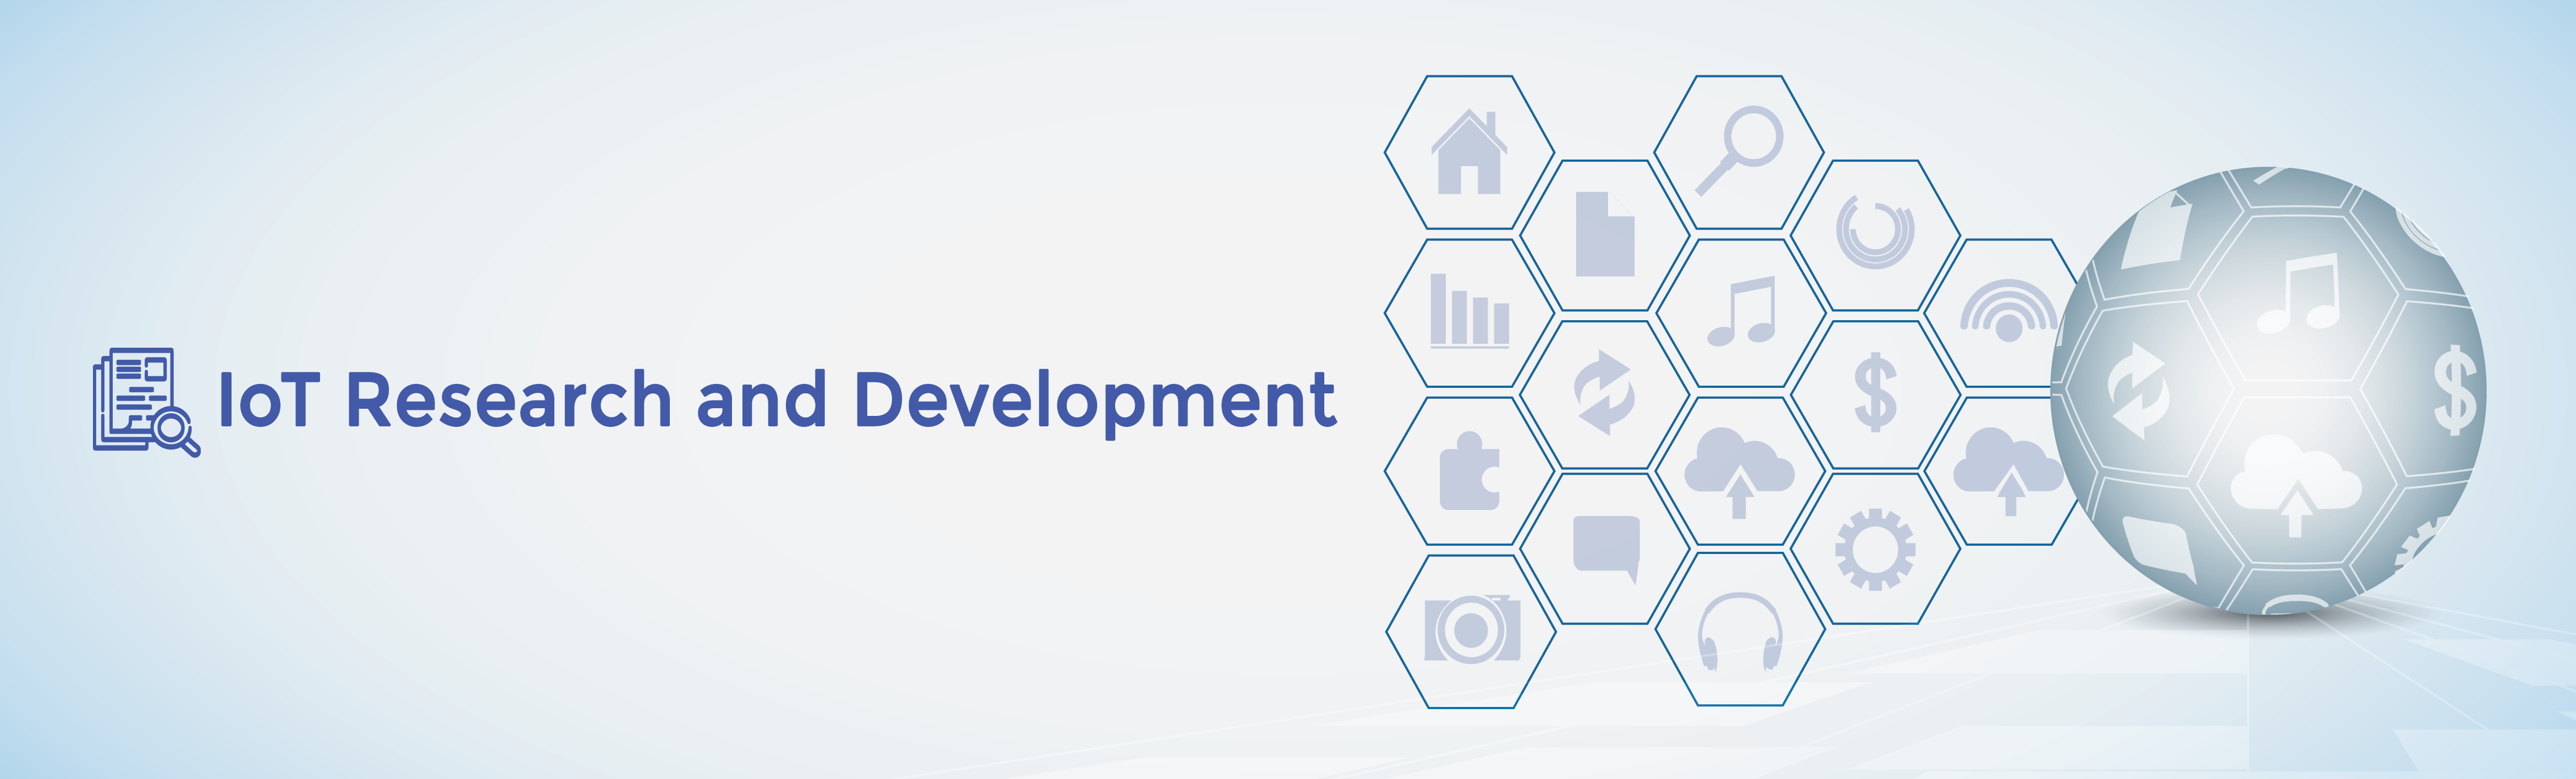 IoT Research and Development